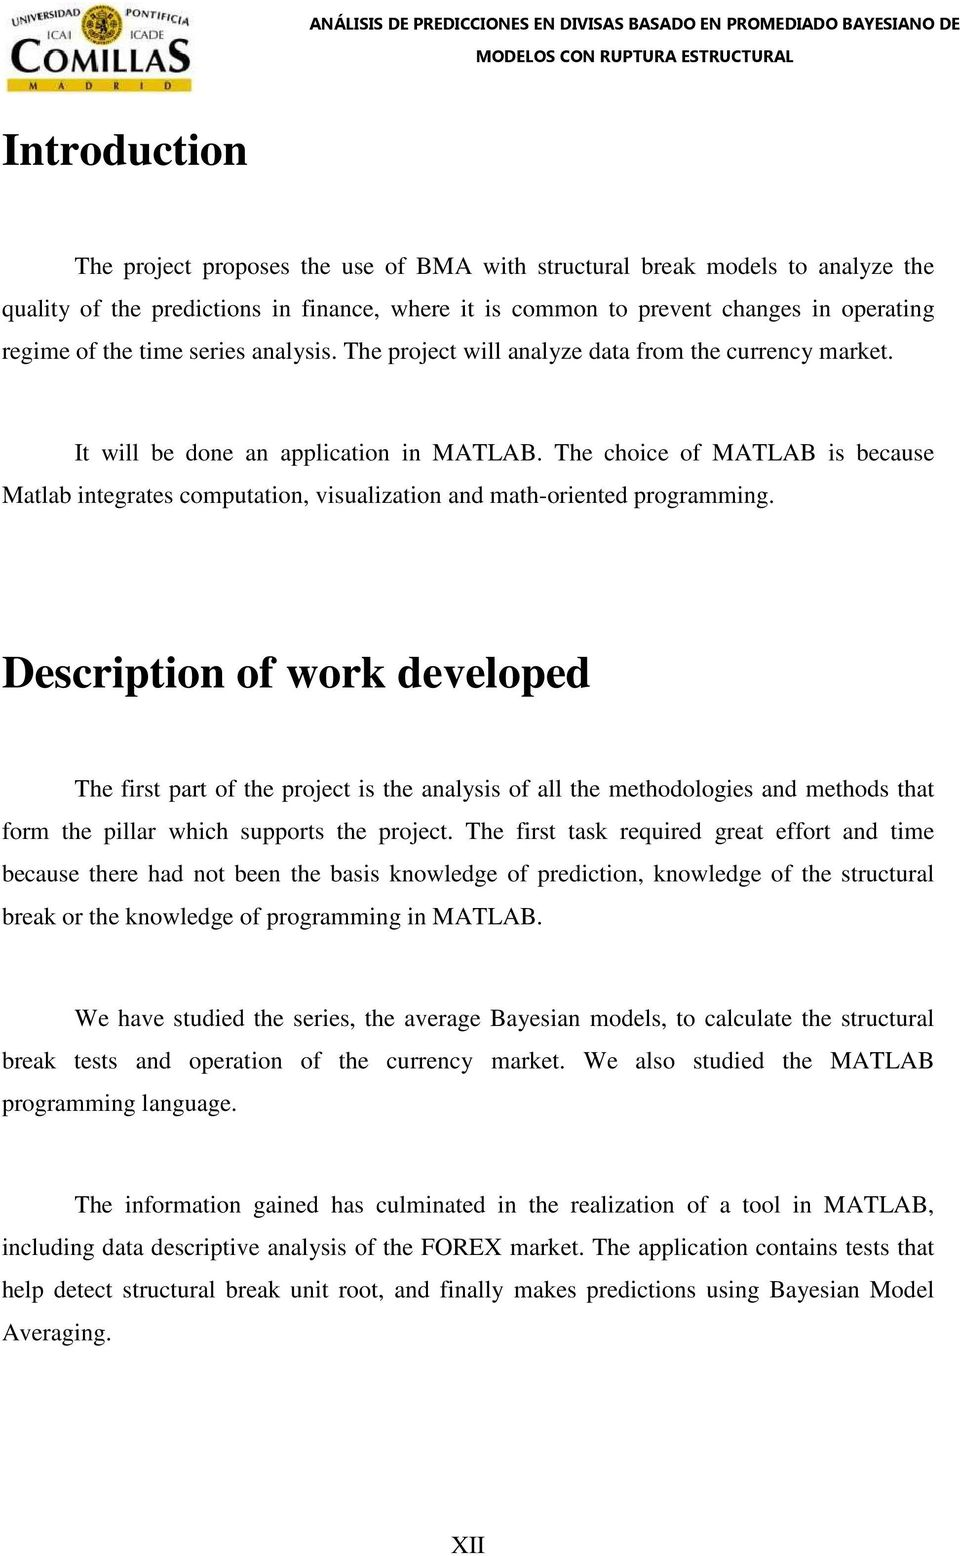 The choice of MATLAB is because Matlab integrates computation, visualization and math-oriented programming.